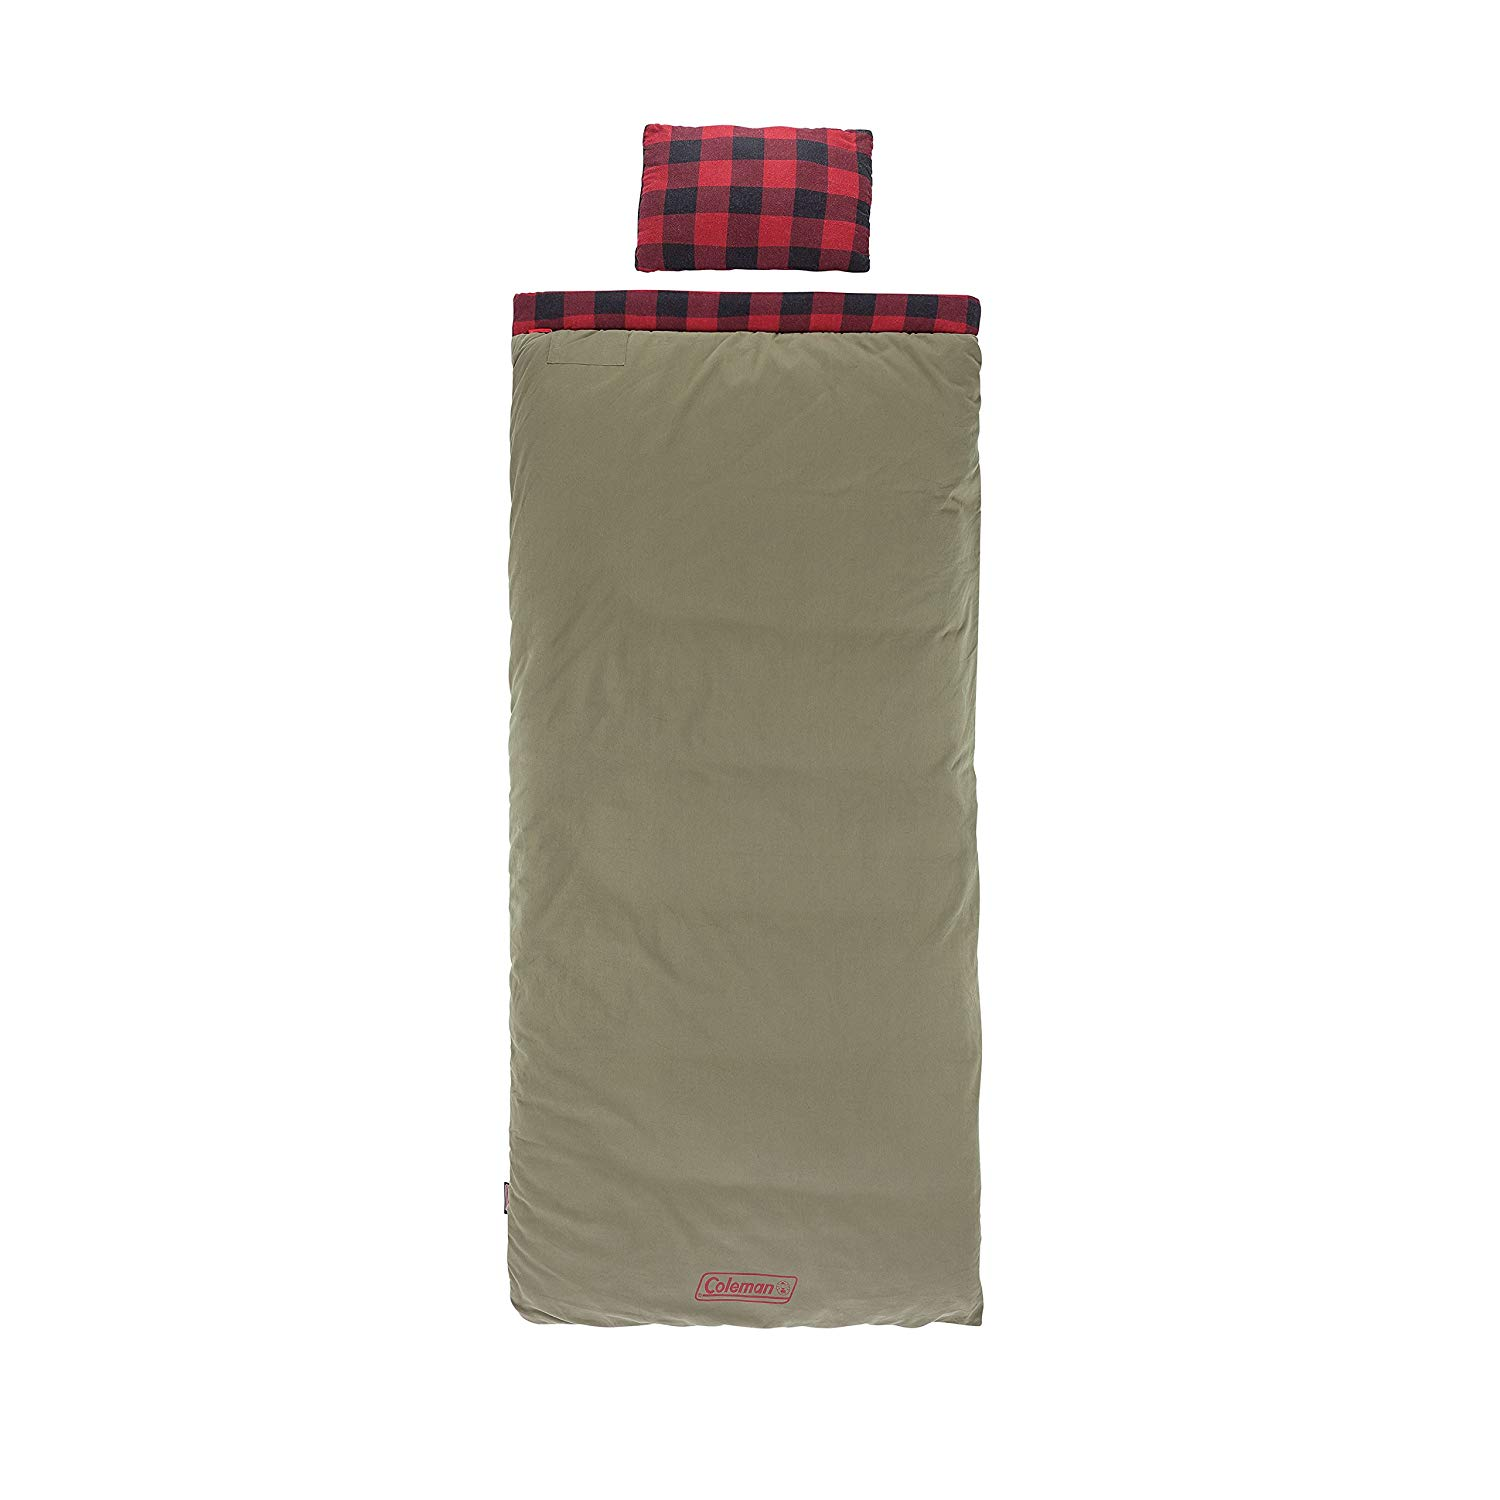 An image of Coleman Big Game 2000030093 Men's Sub Zero Degree Flannel Sleeping Bag